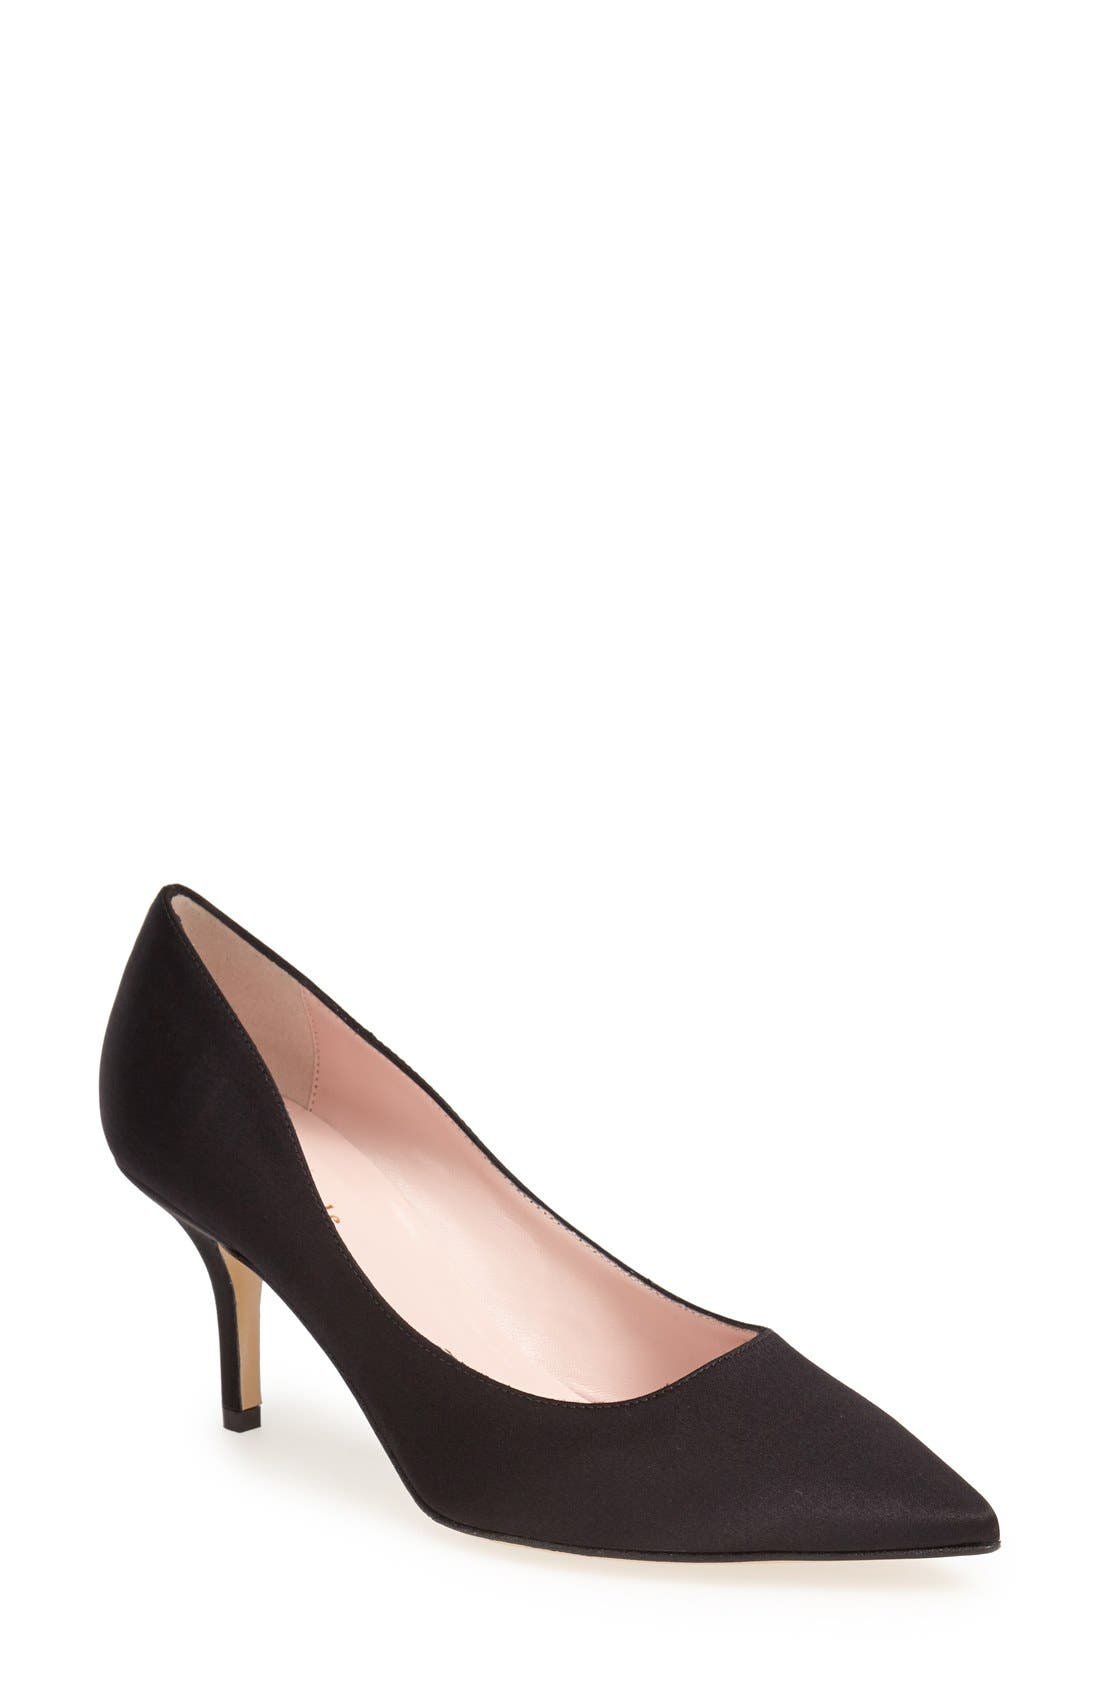 Main Image - kate spade new york 'jess' pump